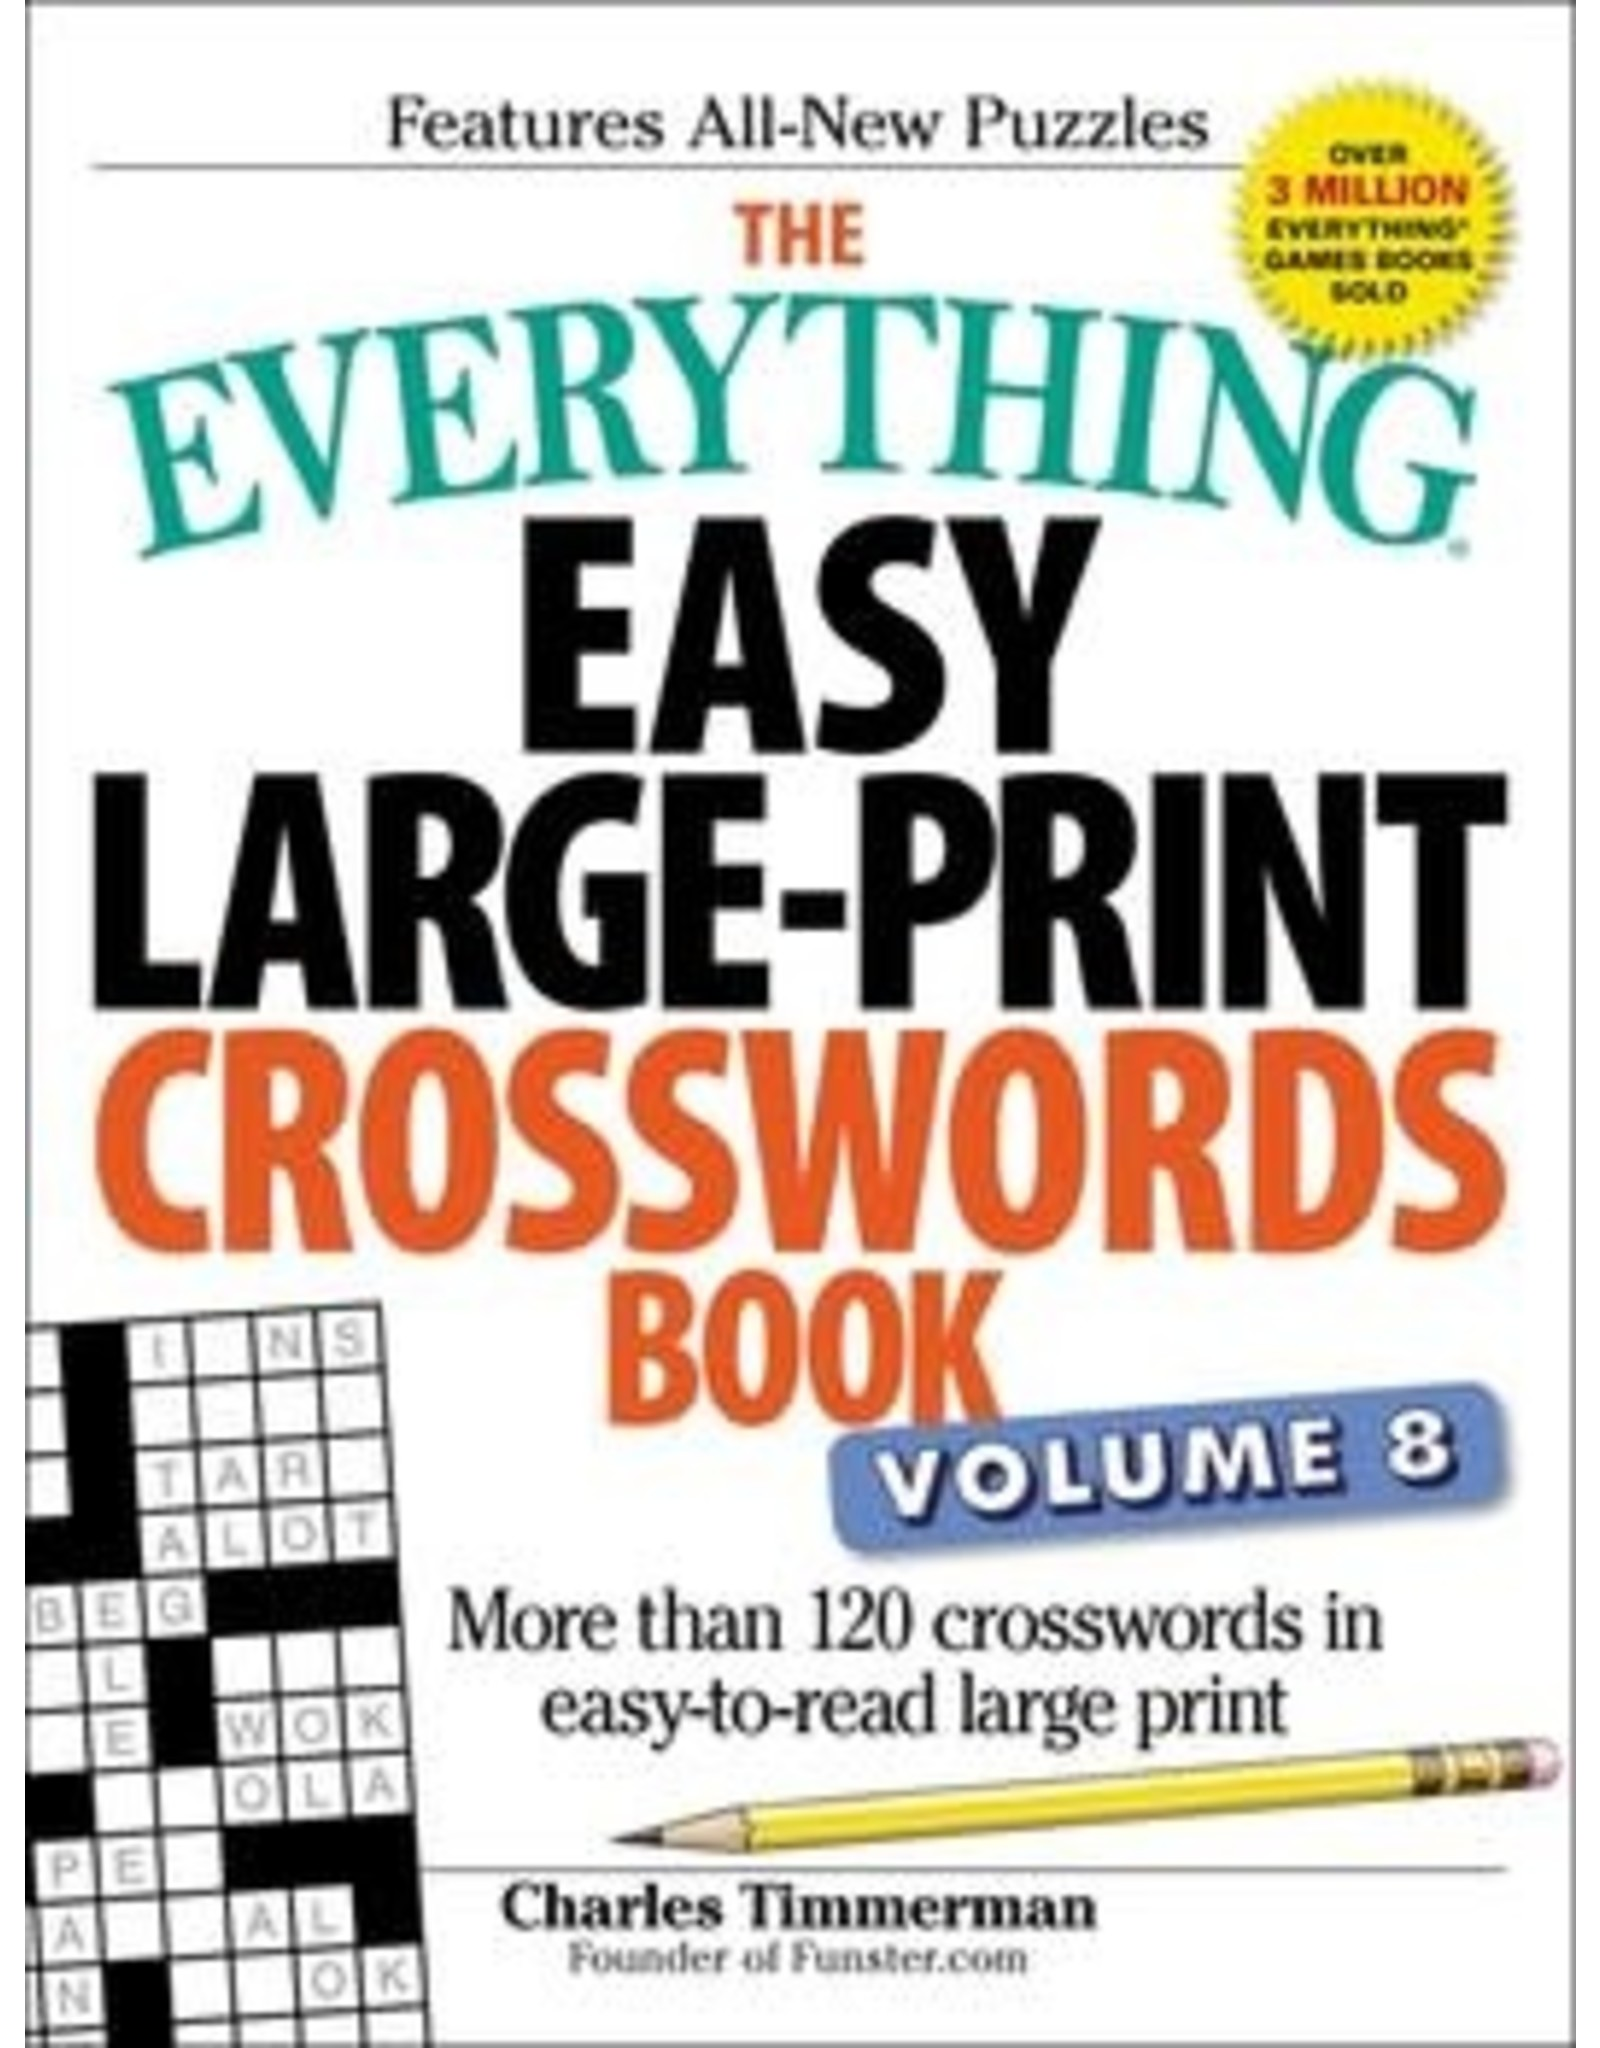 Simon & Schuster The Everything Easy Large Prints Crosswords Book Vol.8